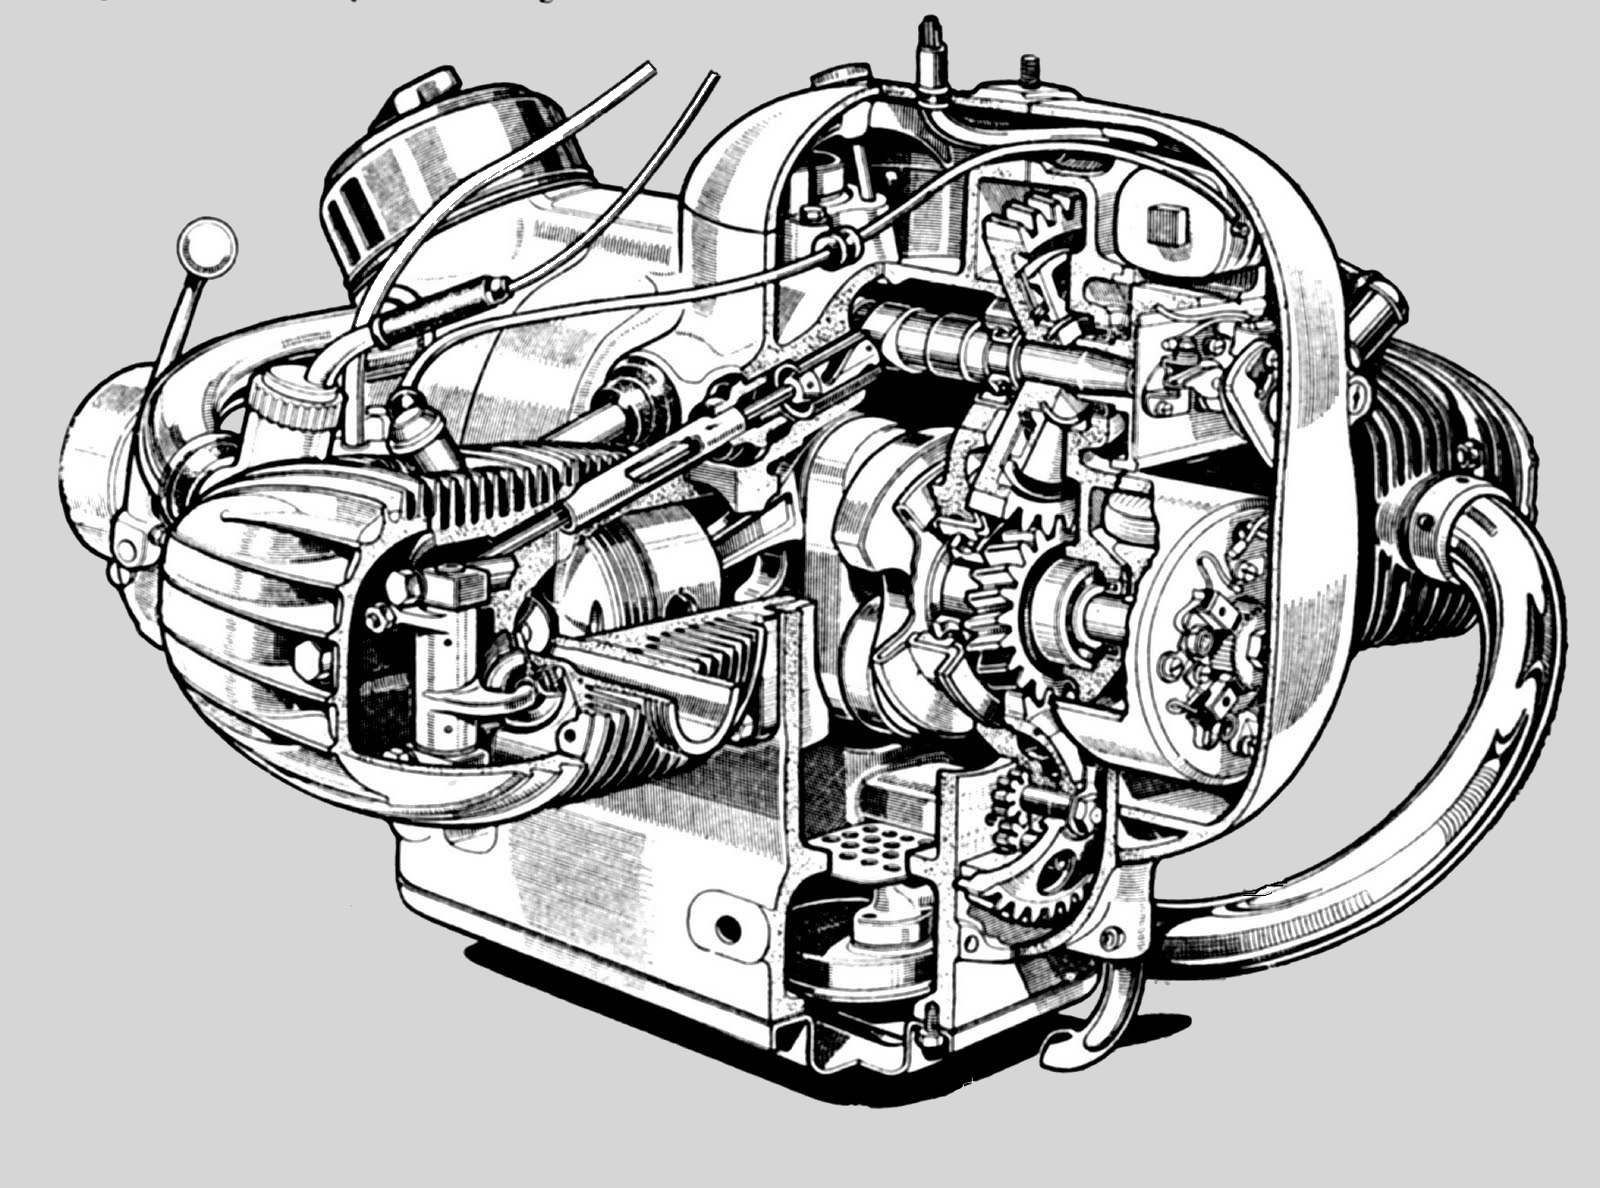 Dan S Motorcycle How An Engine Works Bike Bmw Bmw Engines